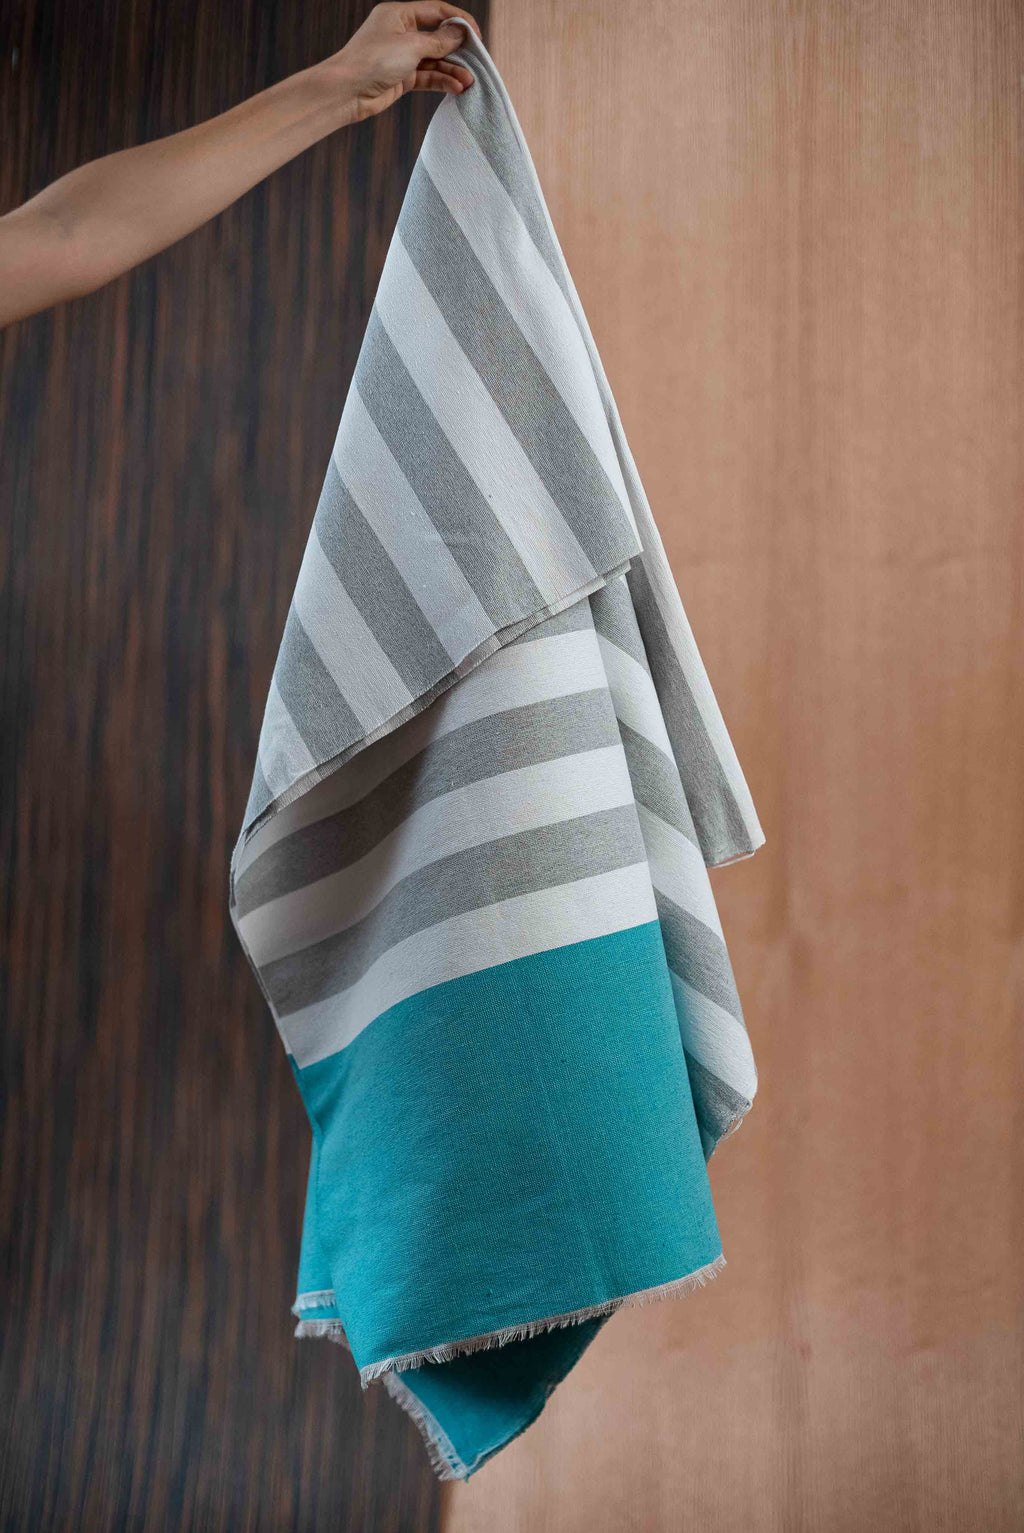 Gray blue towel - TOCO MADERA - Handcraft shoe from Mexico - Handmade shoe